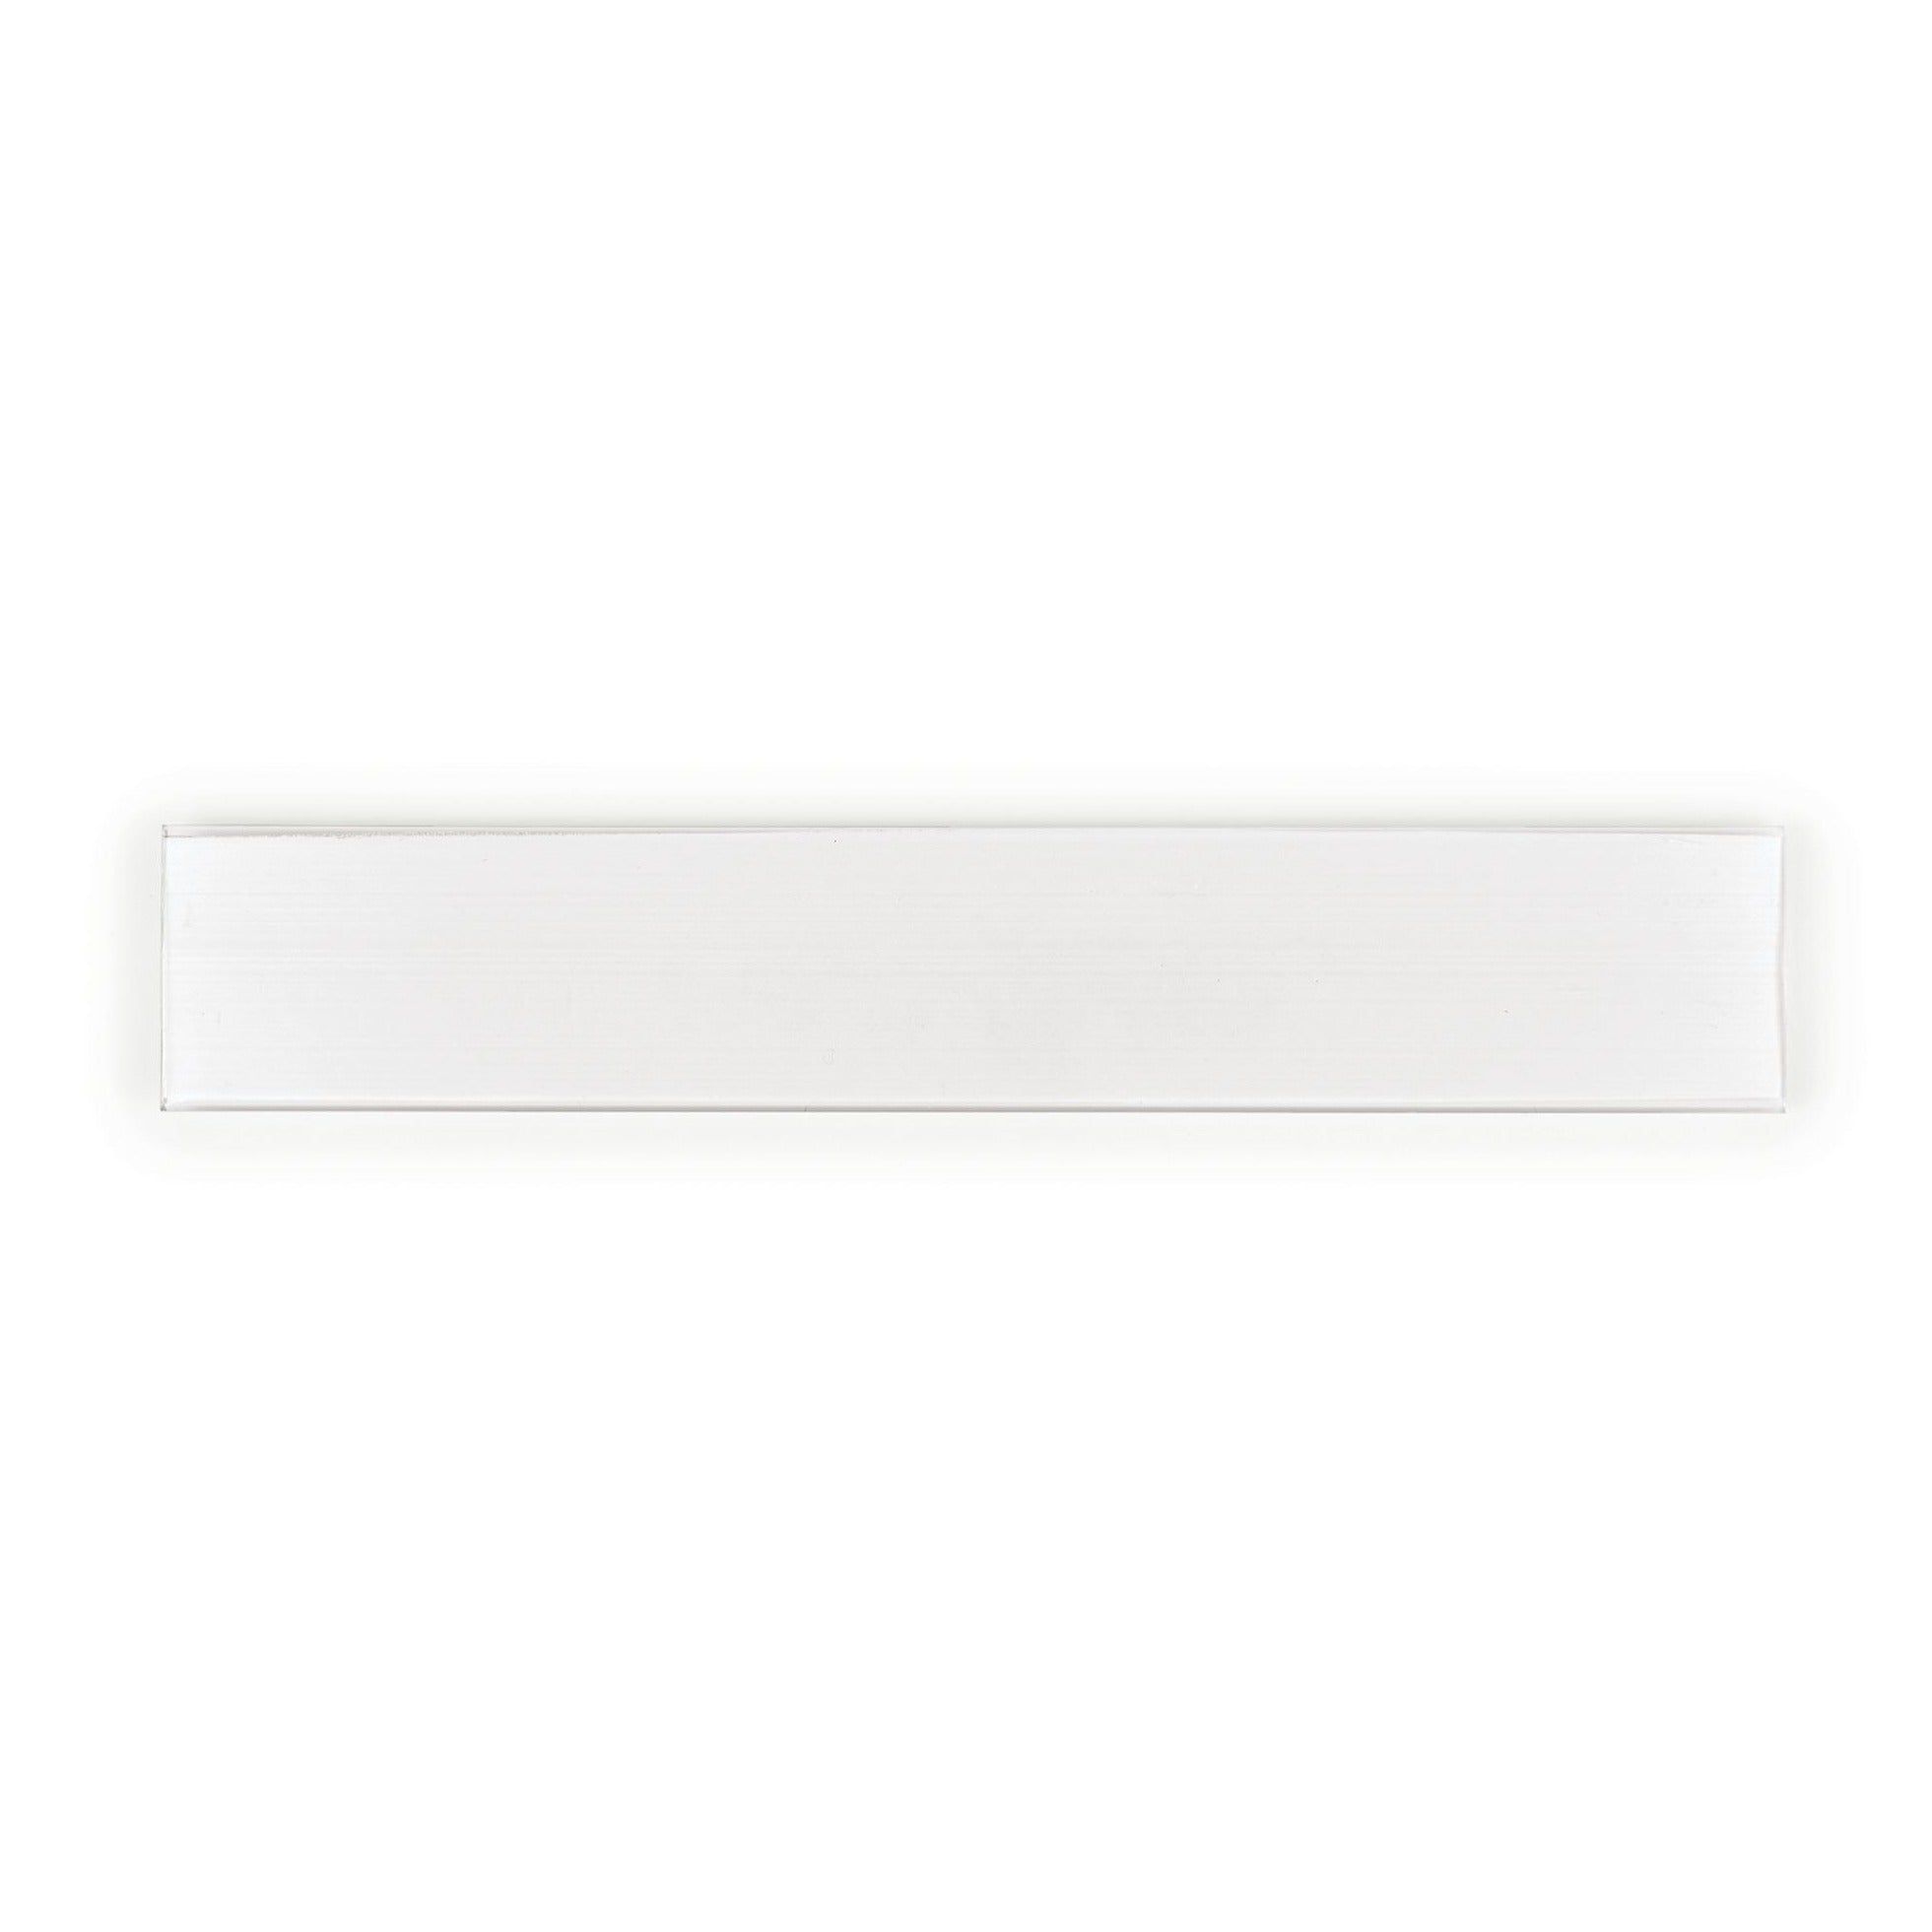 "Self-Adhesive Hol-Dex® Label Holders, 1"" x 6"", 12pk"